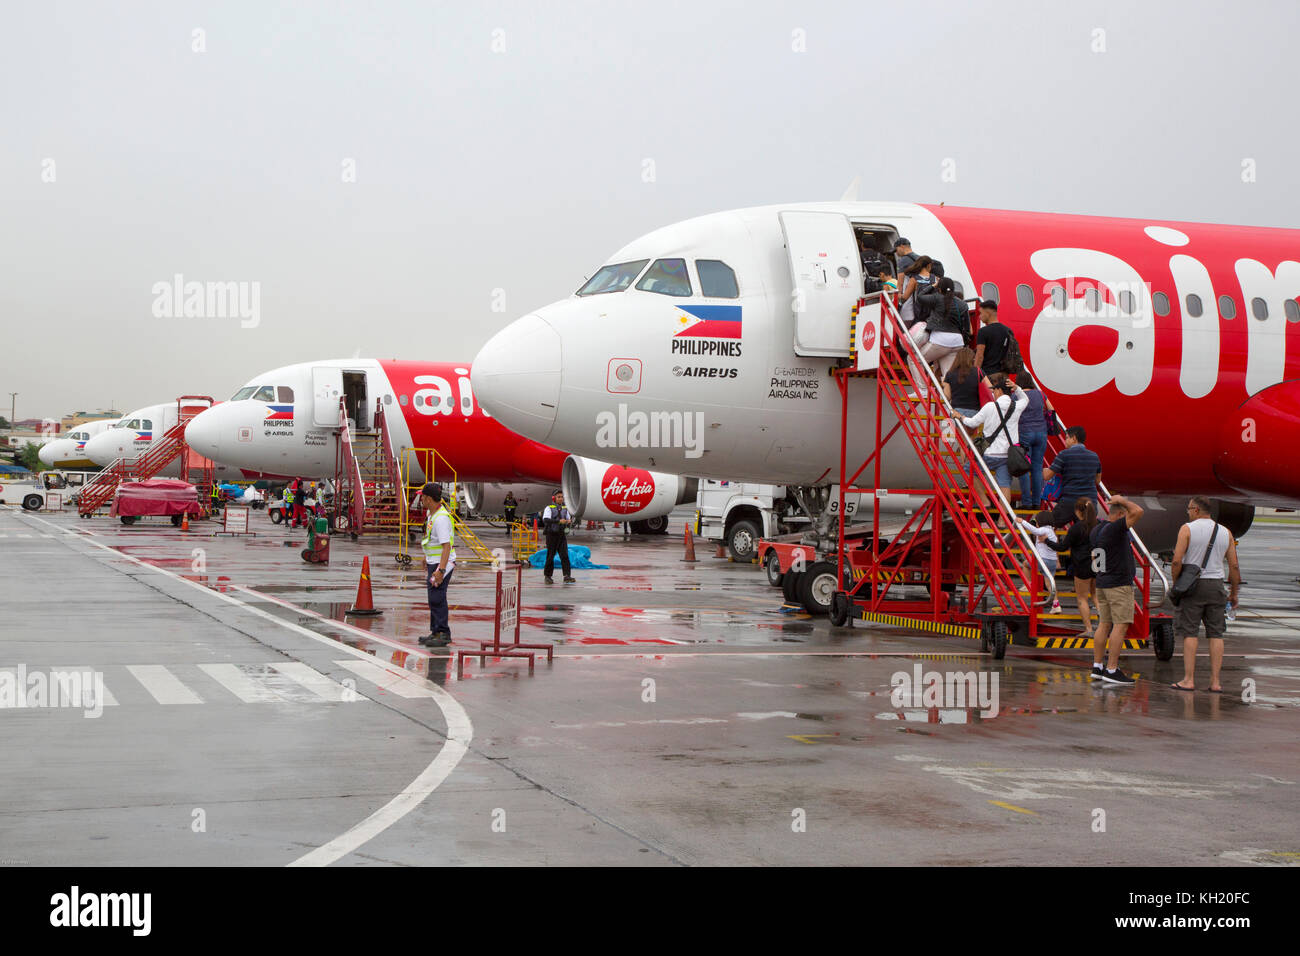 Passengers boarding Air Asia aircraft at Manila airport, Philippines - Stock Image